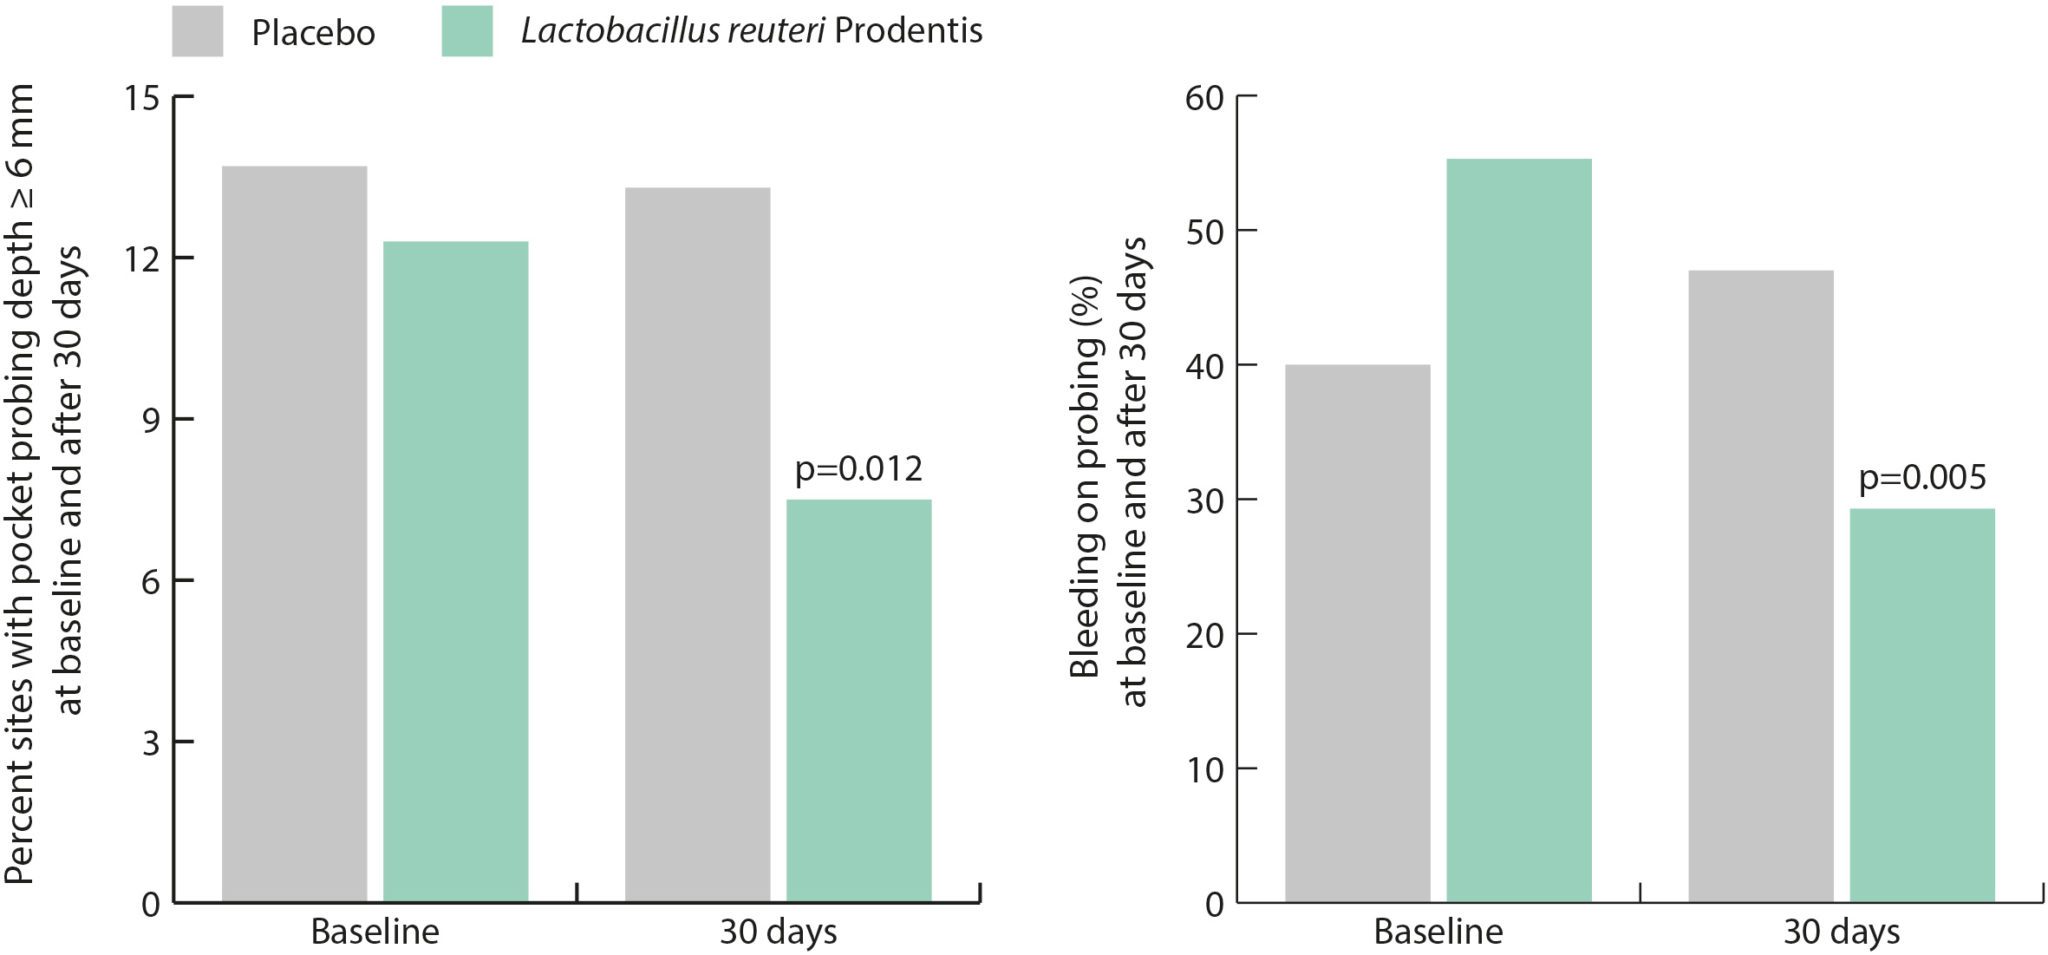 These data indicate that oral administration of Lactobacillus reuteri Prodentis improved the short-term clinical outcomes in non-smoking patients with initial-to-moderate chronic periodontitis.